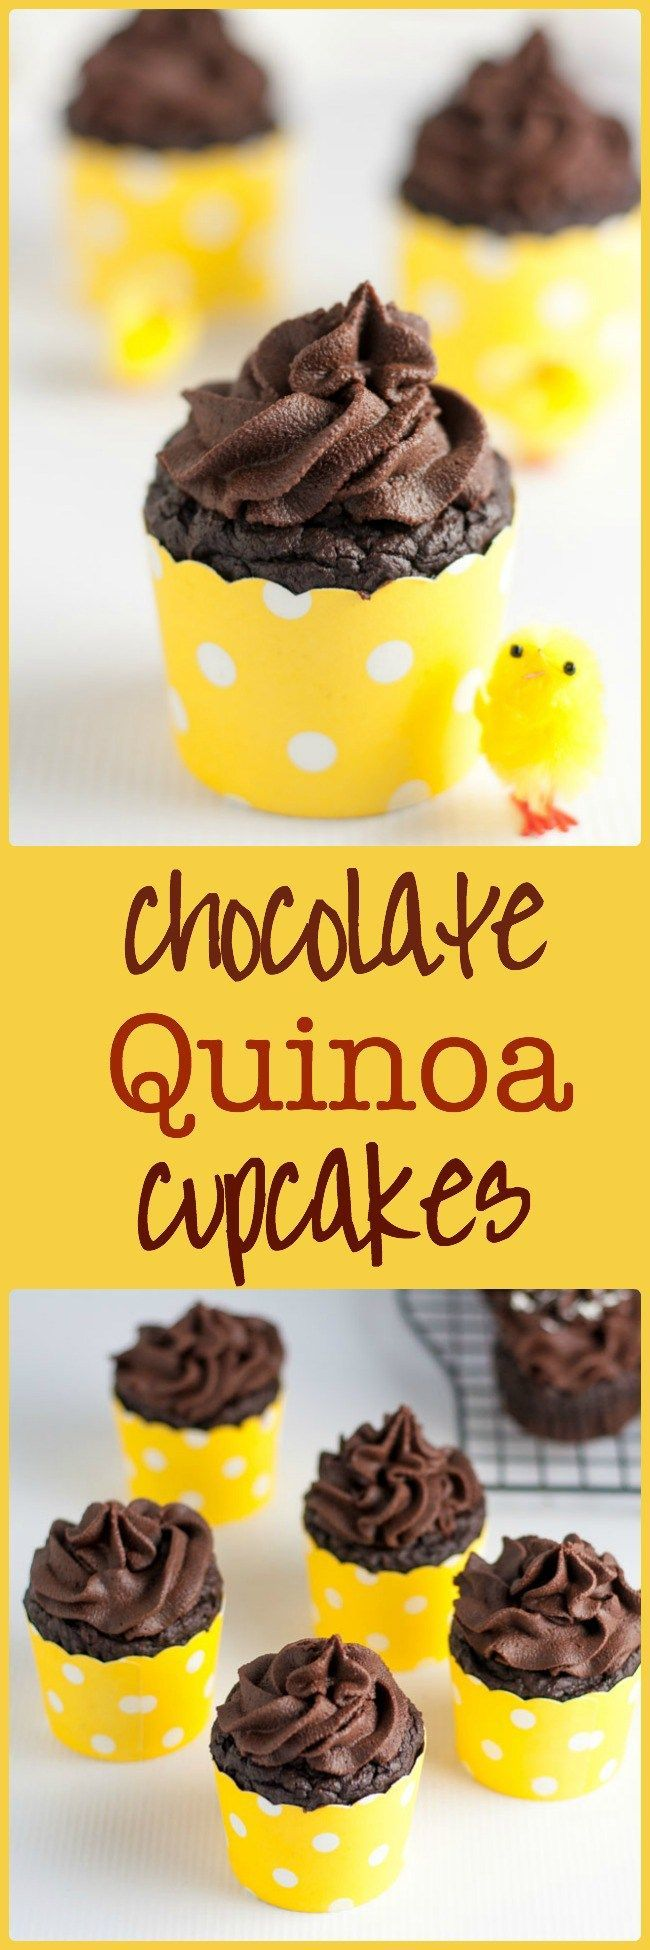 Even Healthier Chocolate Quinoa Cupcakes. An updated, healthier version of the traditional recipe, now gluten-free, dairy-free and refined sugar-free too! Rich chocolate flavour, topped with Whipped Chocolate Coconut Milk frosting. Perfect for Easter treats!